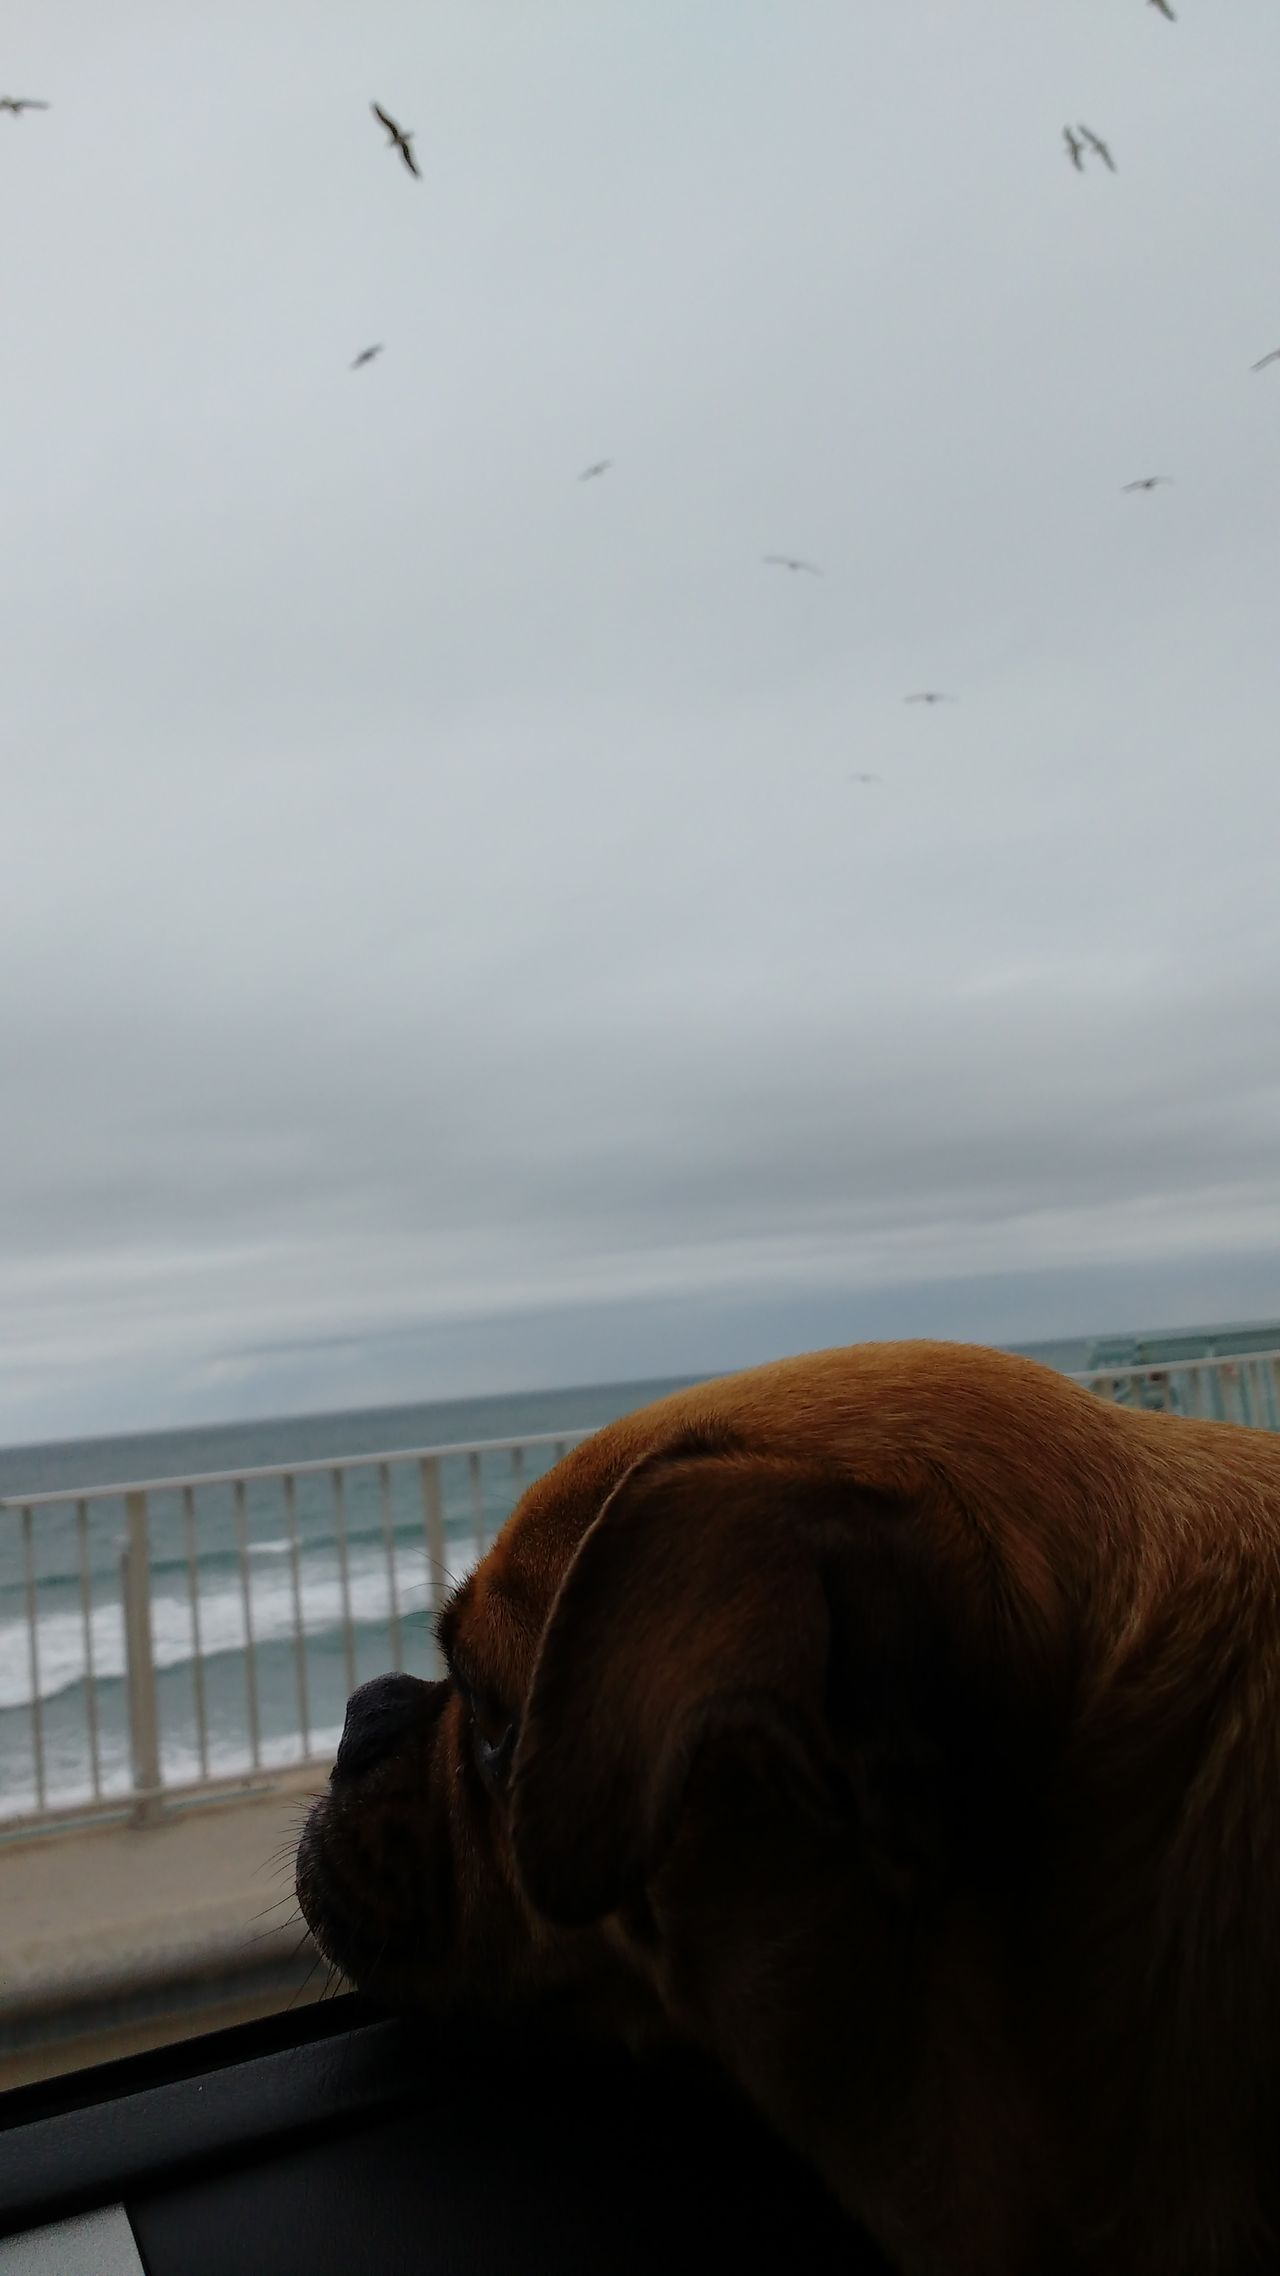 Midasthefriendlychug Lookingoutthewindow Birds Dog Ocean Beach Chug Animal Photography